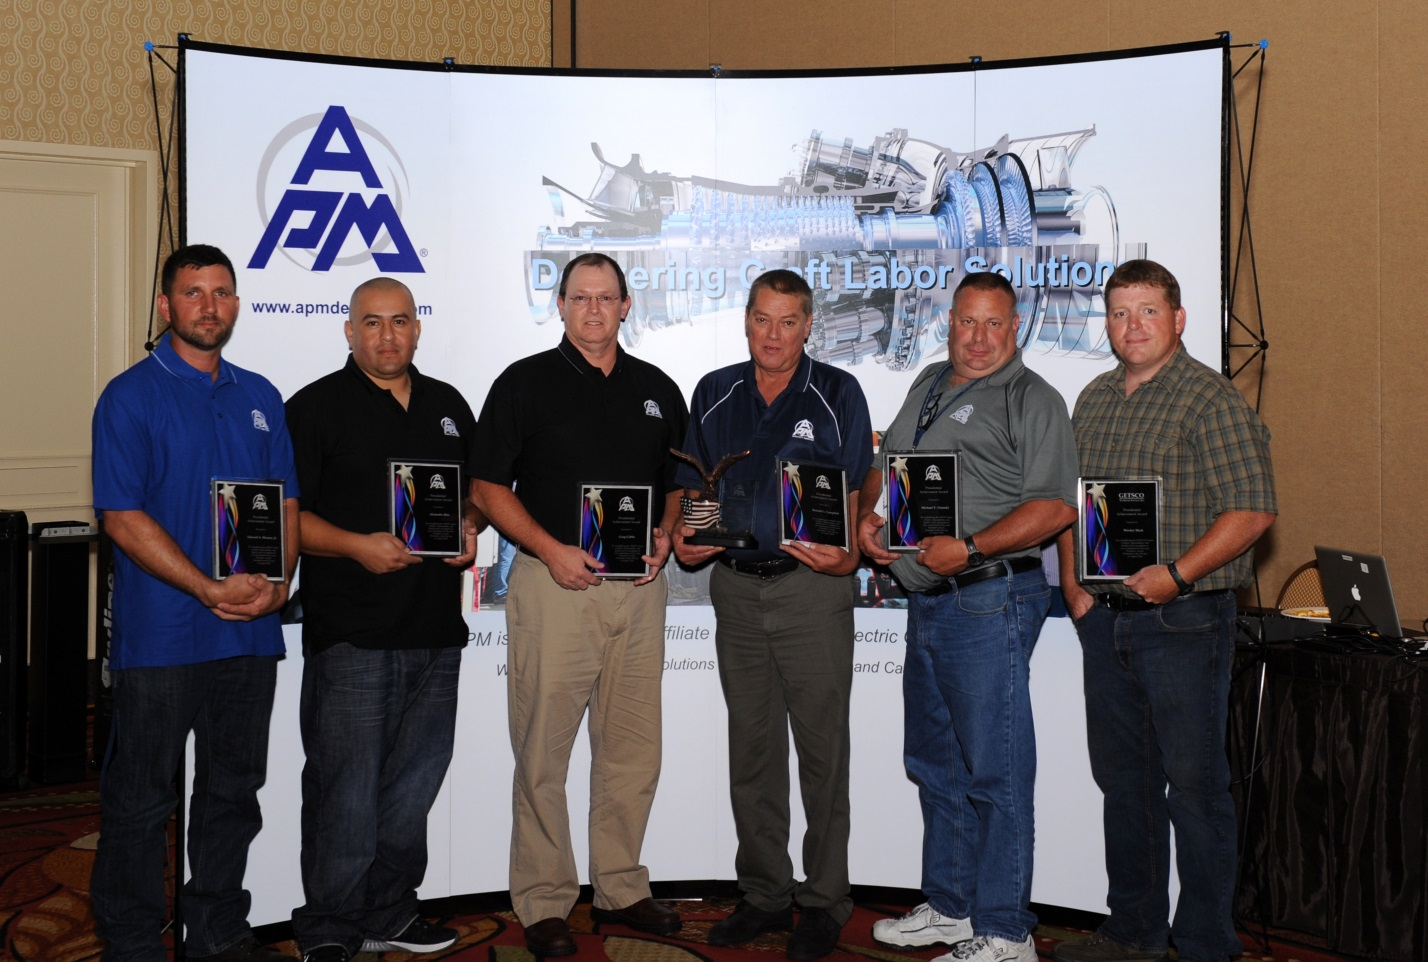 We are proud of all of the nominees for this year's APM Presidential Award and extend special congratulations to the winner, Ronald Campbell. Pictured from left to right: Edward Menees, Alejandro Blas, Greg Gibbs, Ronald Campbell, Michael Ornoski and Wesley Heck.